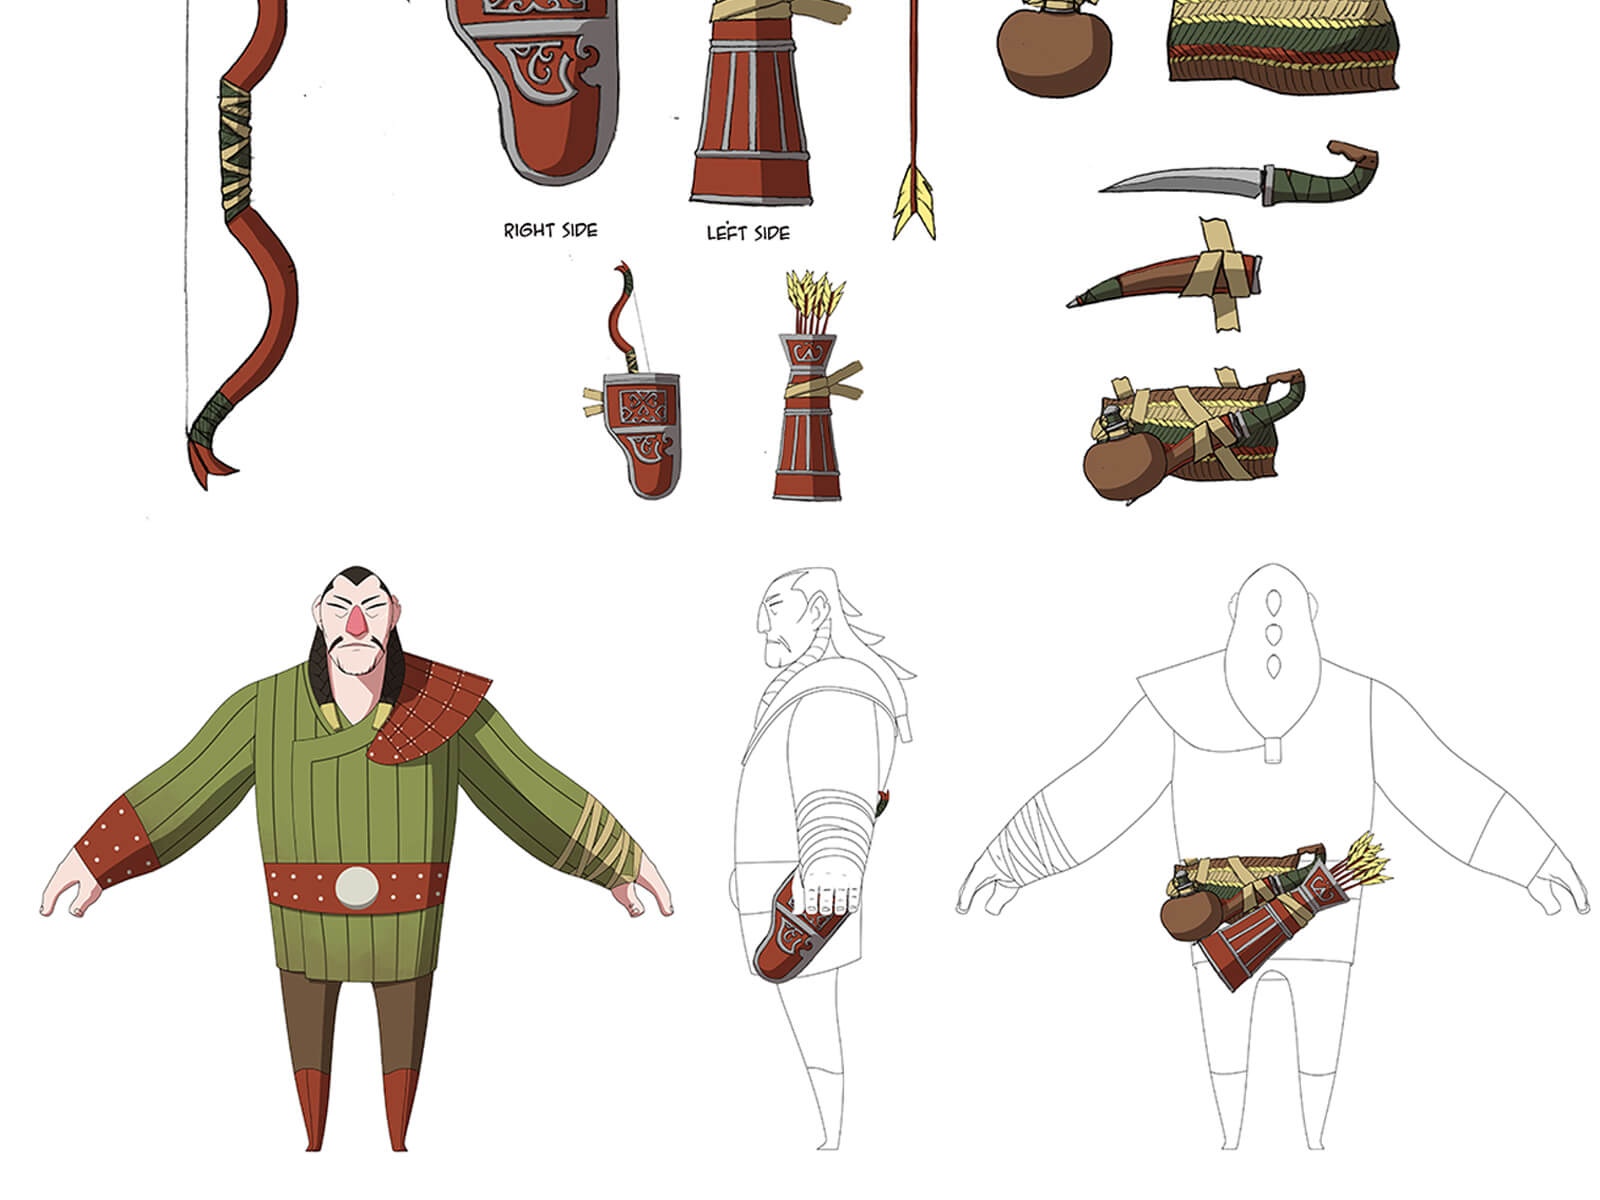 Color sketch of an ancient hunter and his equipment including a bow, arrows and quiver, knife, and water pouch.